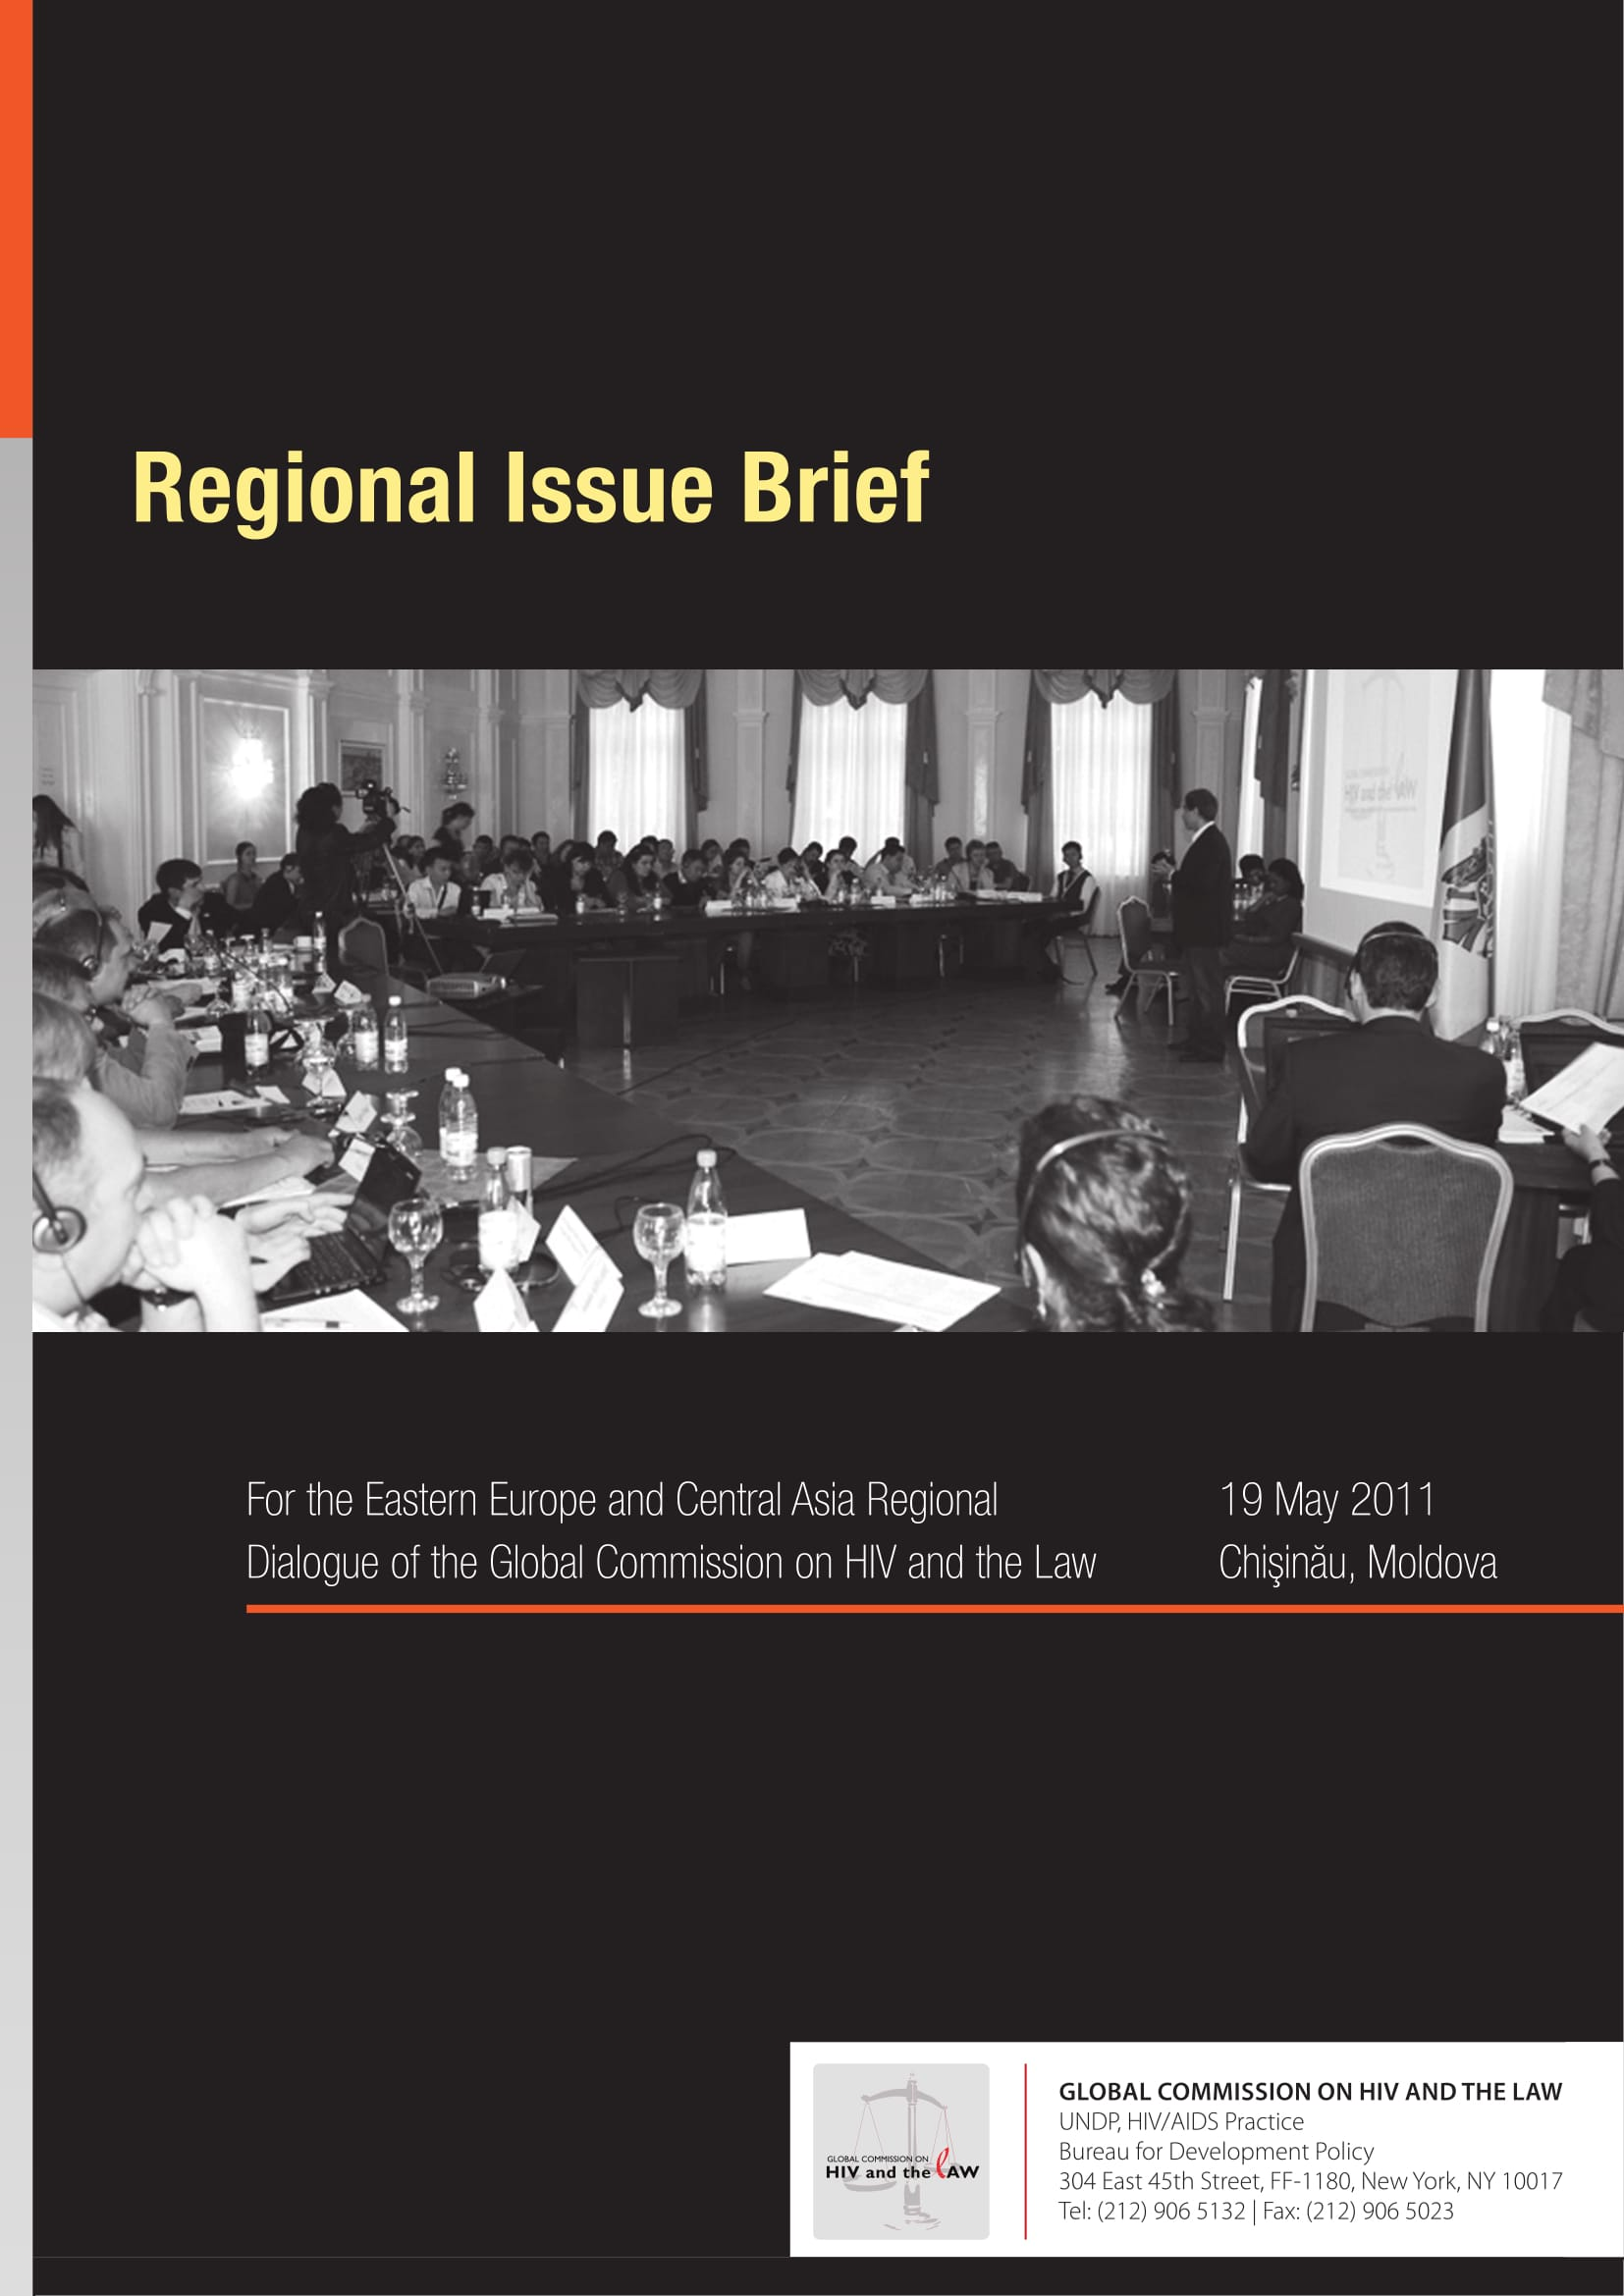 Eastern Europe and Central Asia Regional Issue Brief